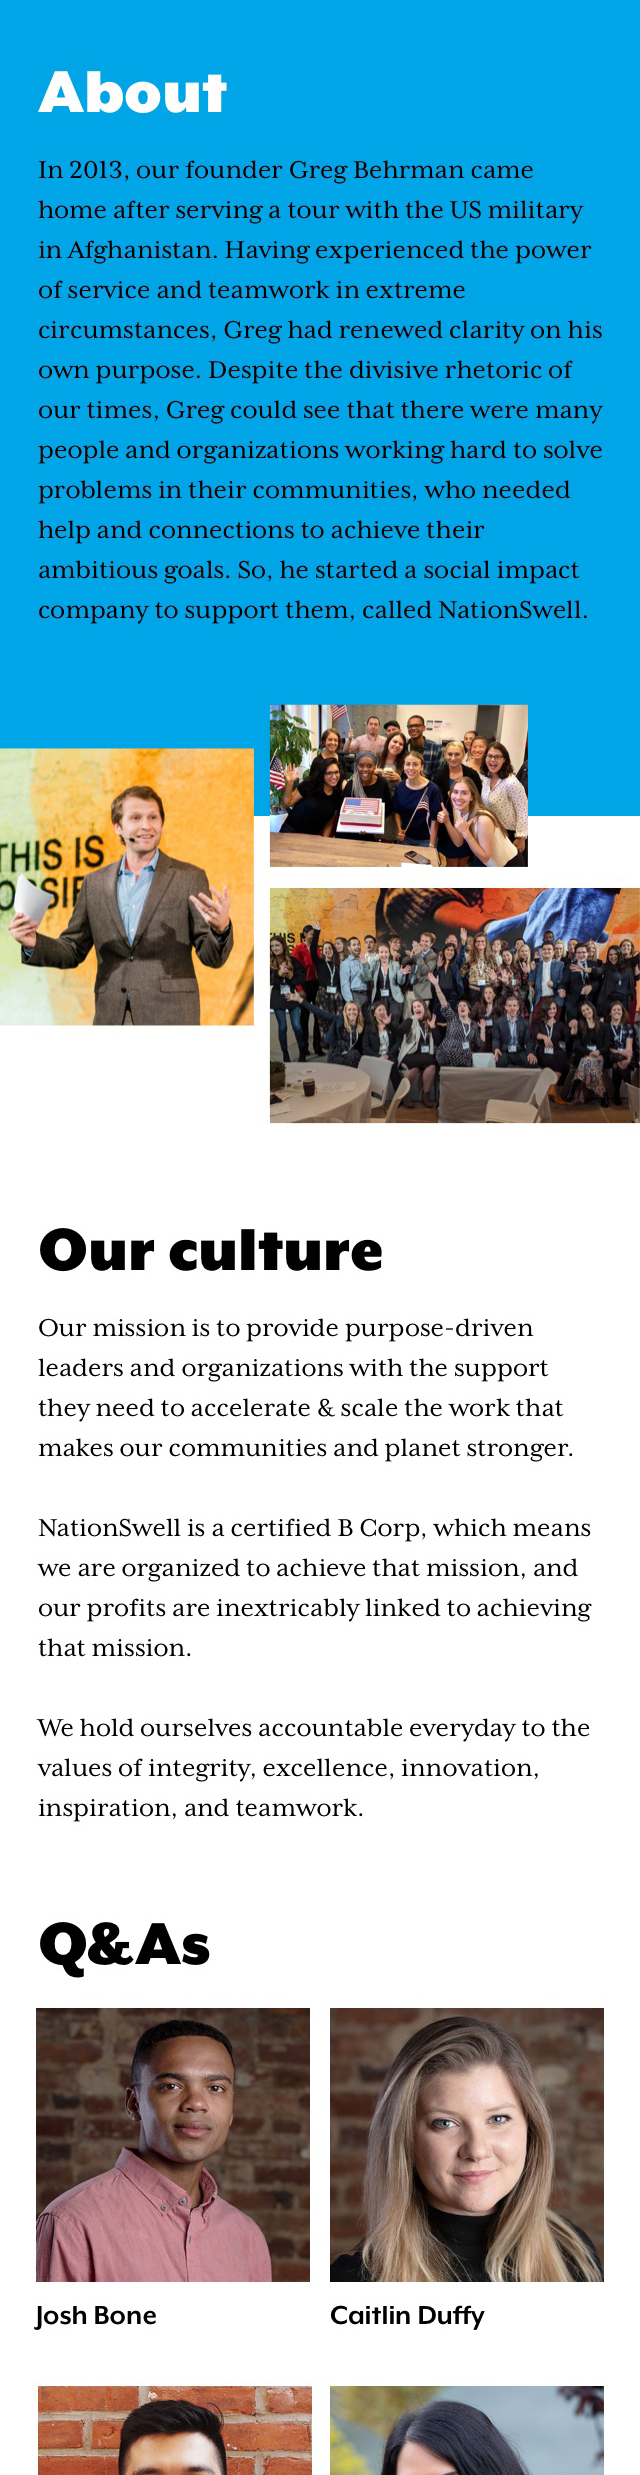 NationSwell About